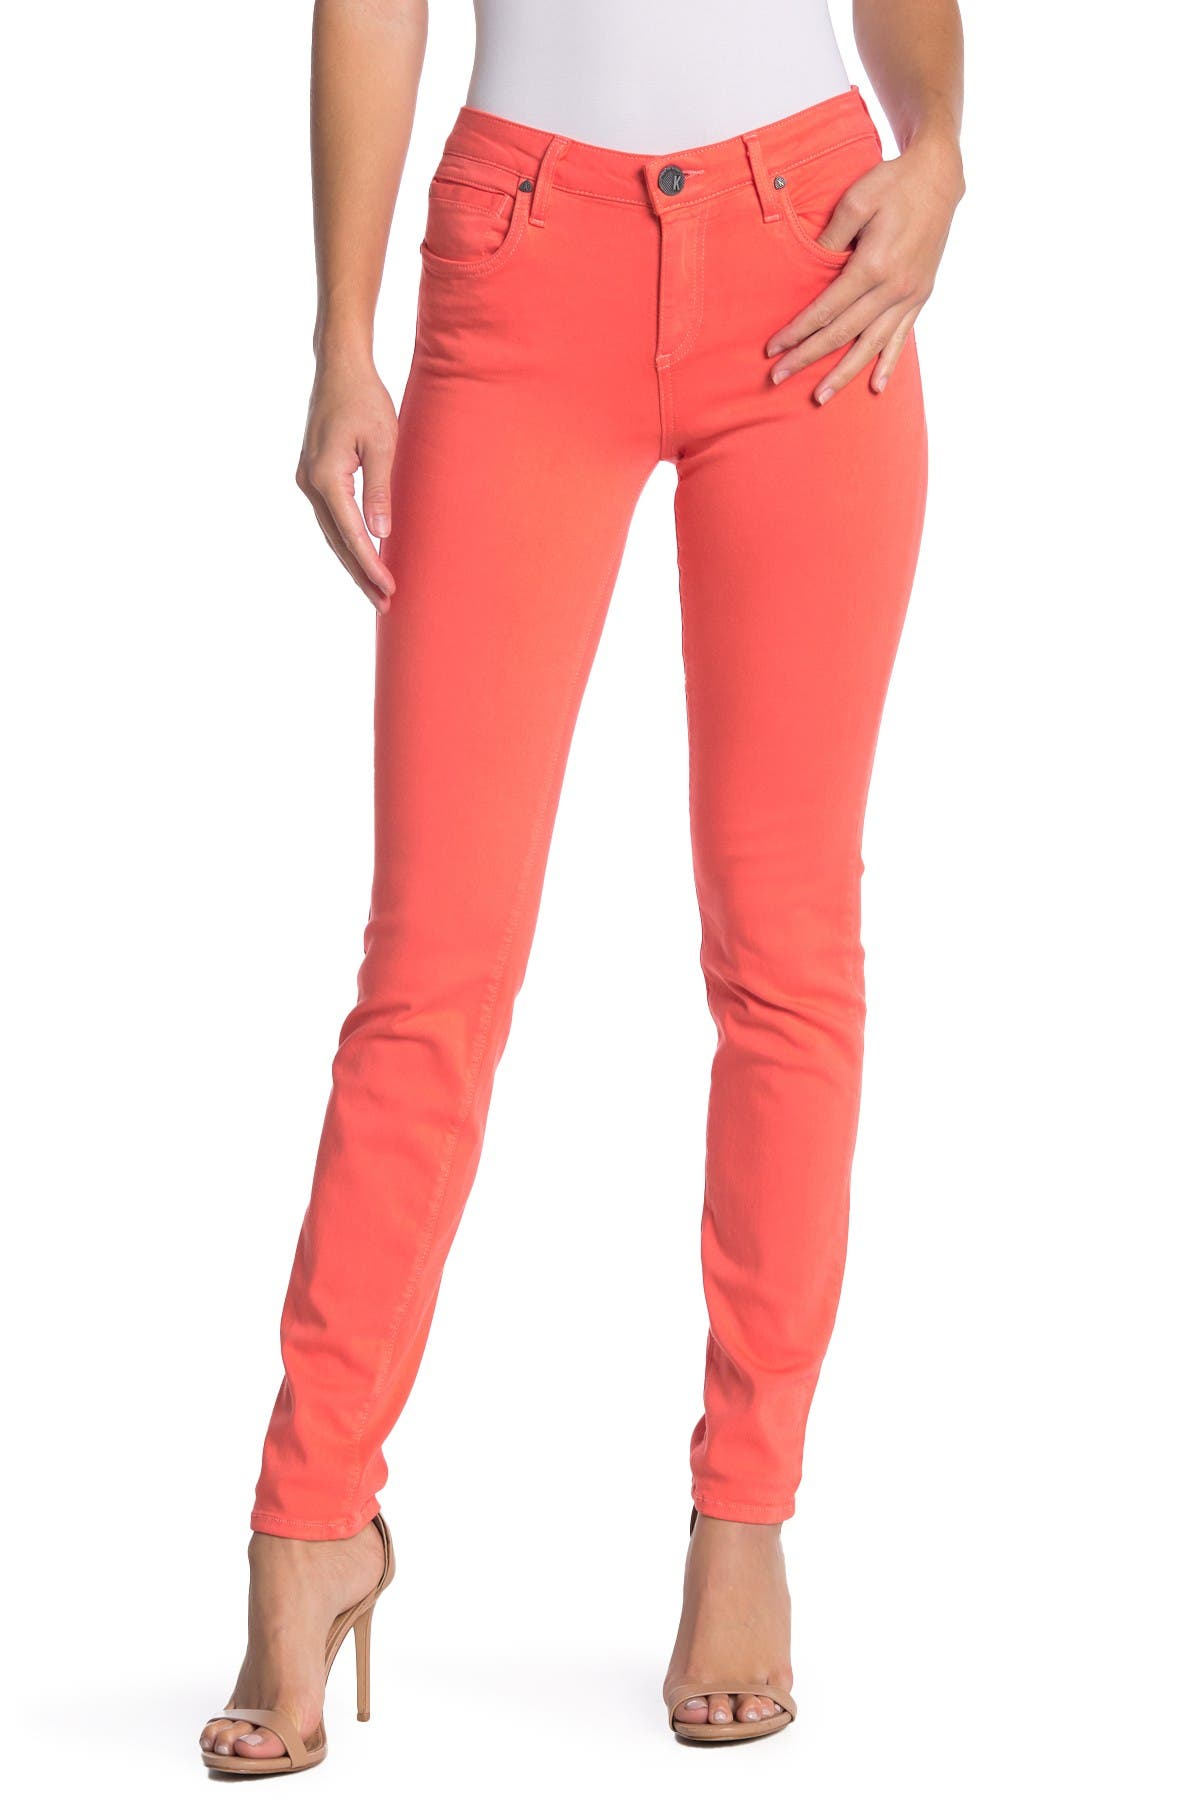 Image of KUT from the Kloth Diana Skinny Jeans